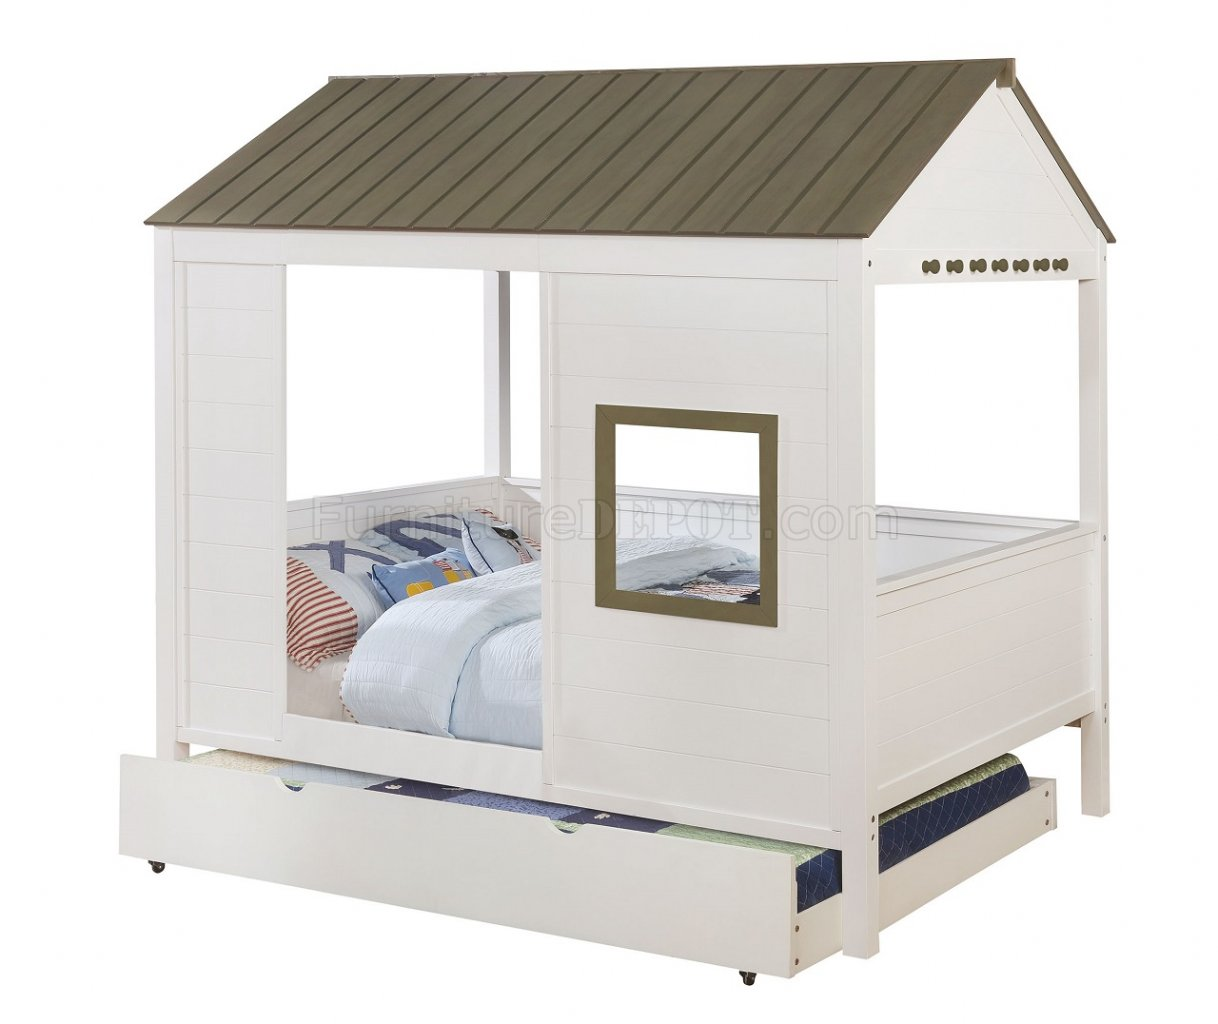 Cobin Cm7133 Kids House Bed In White Grey W Options